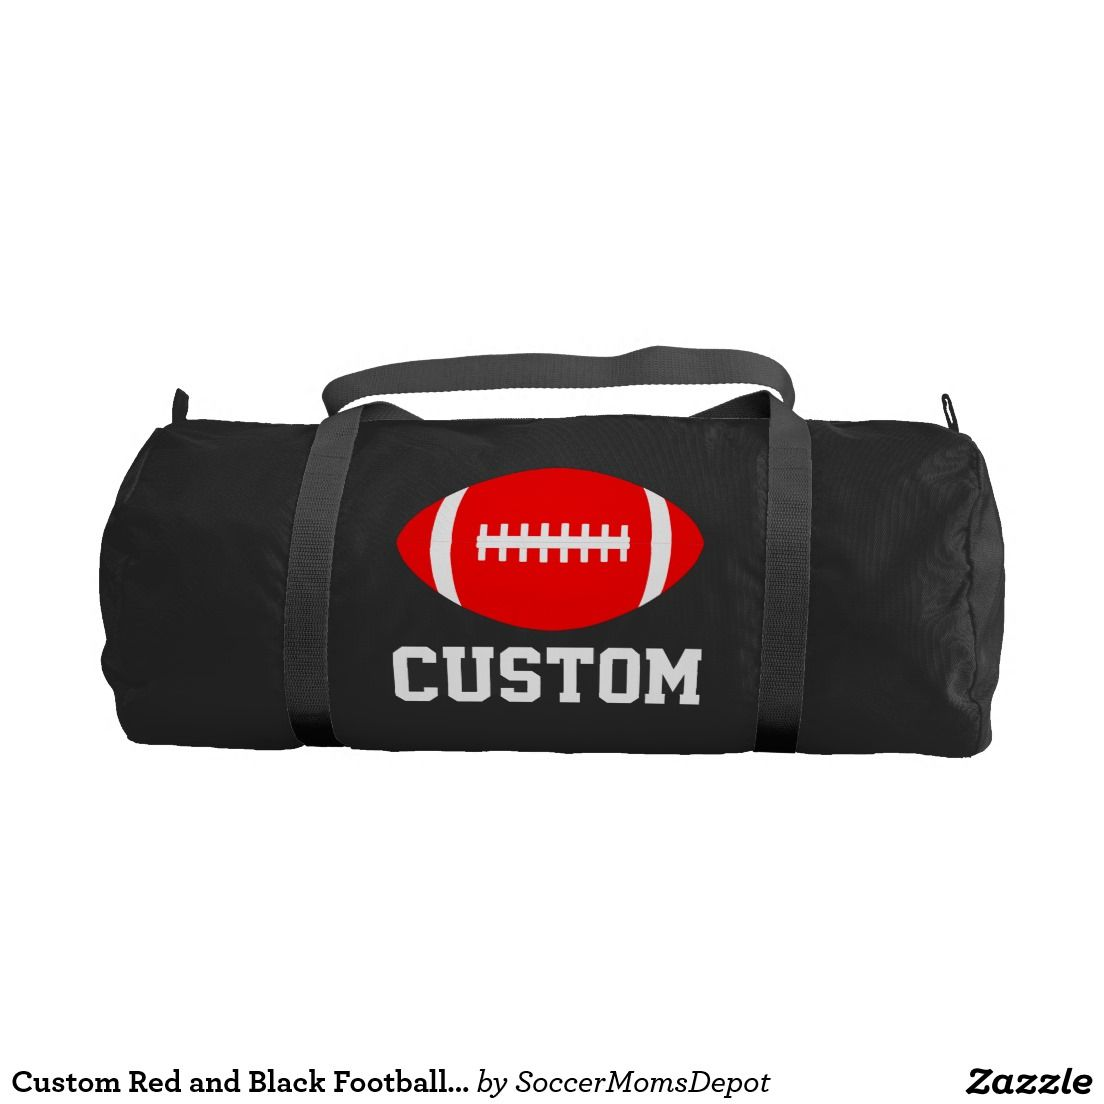 Custom  Red  Football  Equipment  Duffel  Bag...Great for football coaches  or players with red team colors. Add your own team name or other  text...only on ... 3efeb8e64acdc